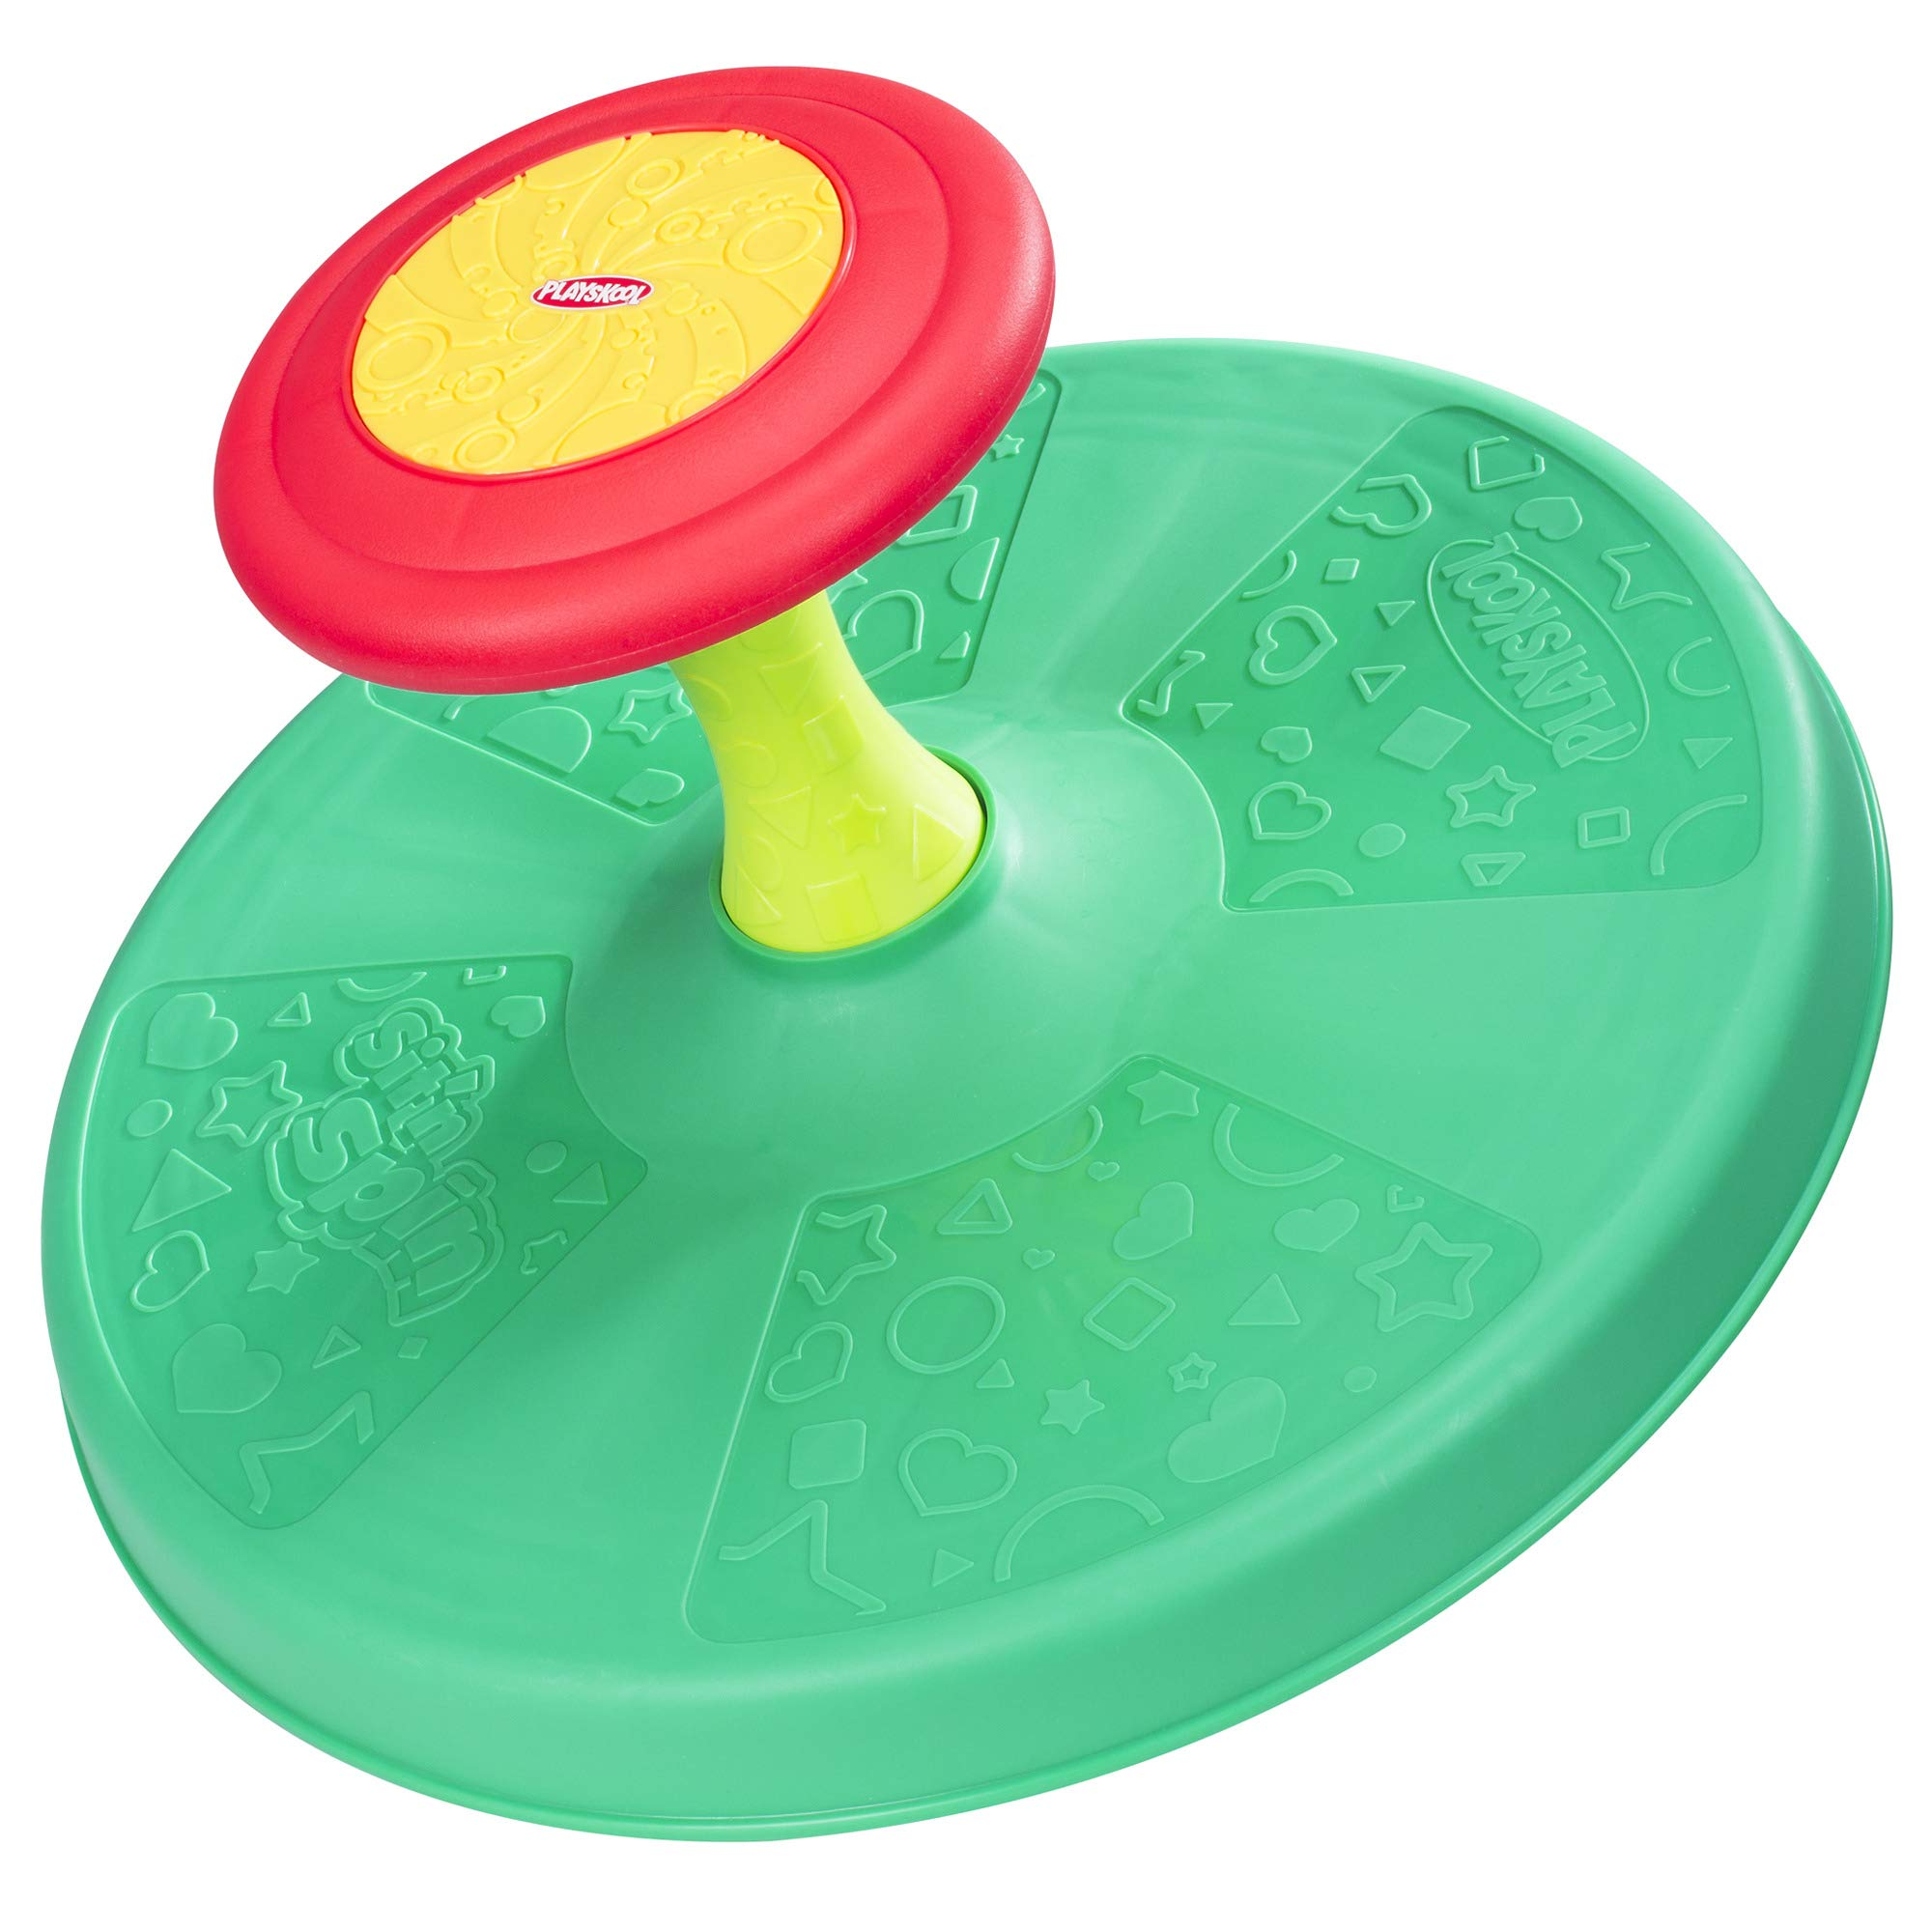 Playskool Sit 'n Spin Classic Spinning Activity Toy for Toddlers Ages Over 18 Months (Amazon Exclusive) Multicolor